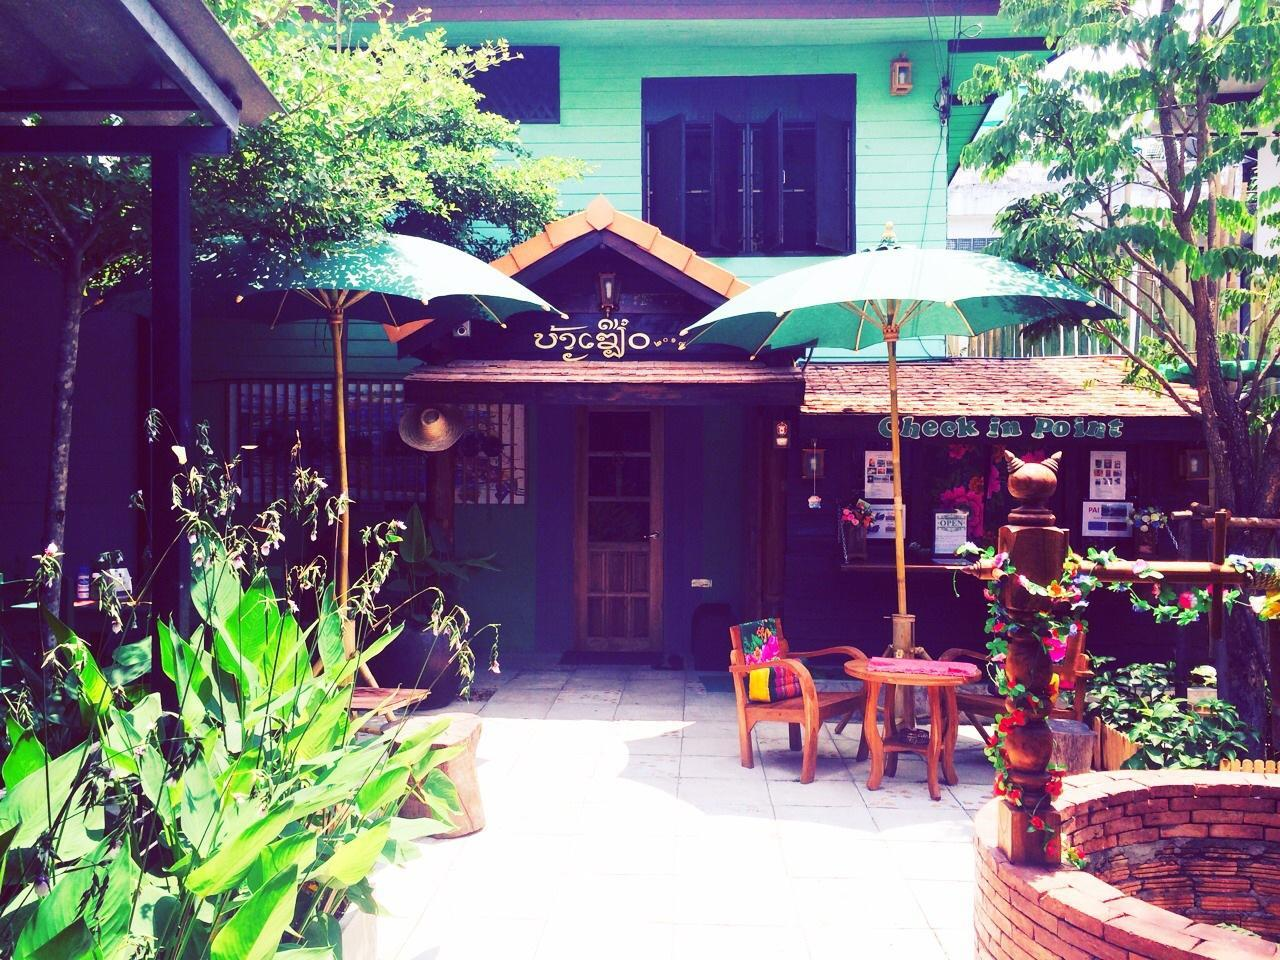 Green house backpacker old city chiang mai thailand for Classic house chiang mai massage